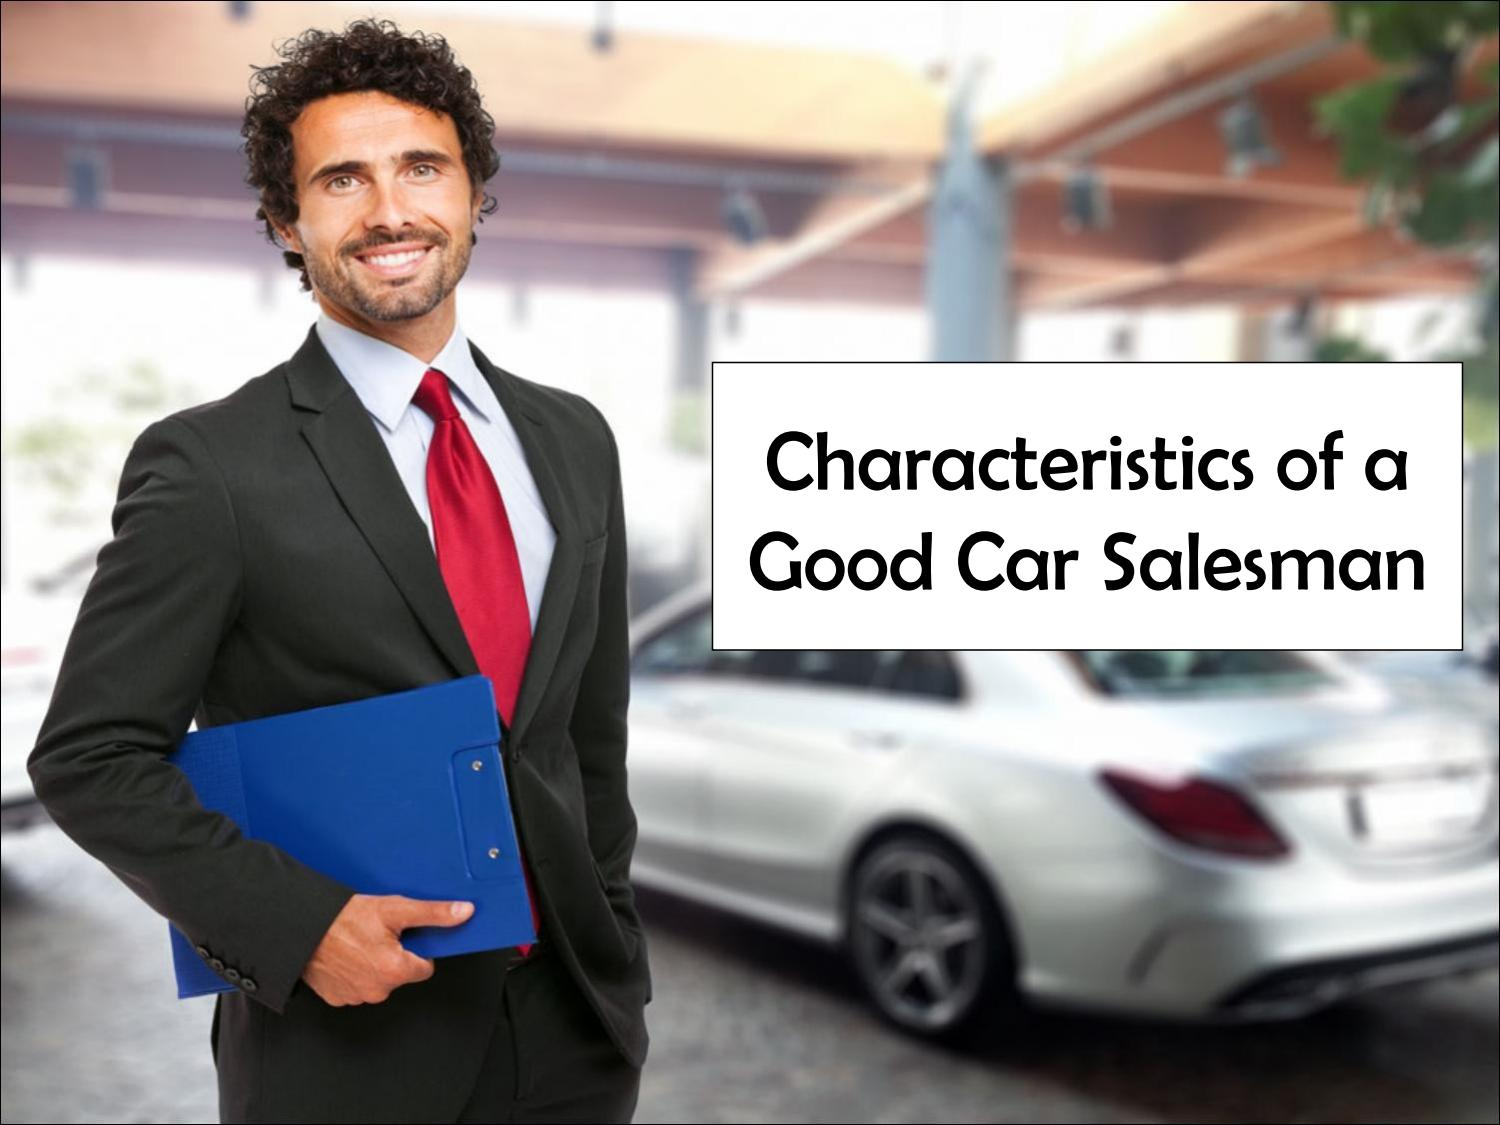 How To Be A Good Car Salesman >> Characteristics Of A Good Car Salesman By Theleaseacademy Issuu